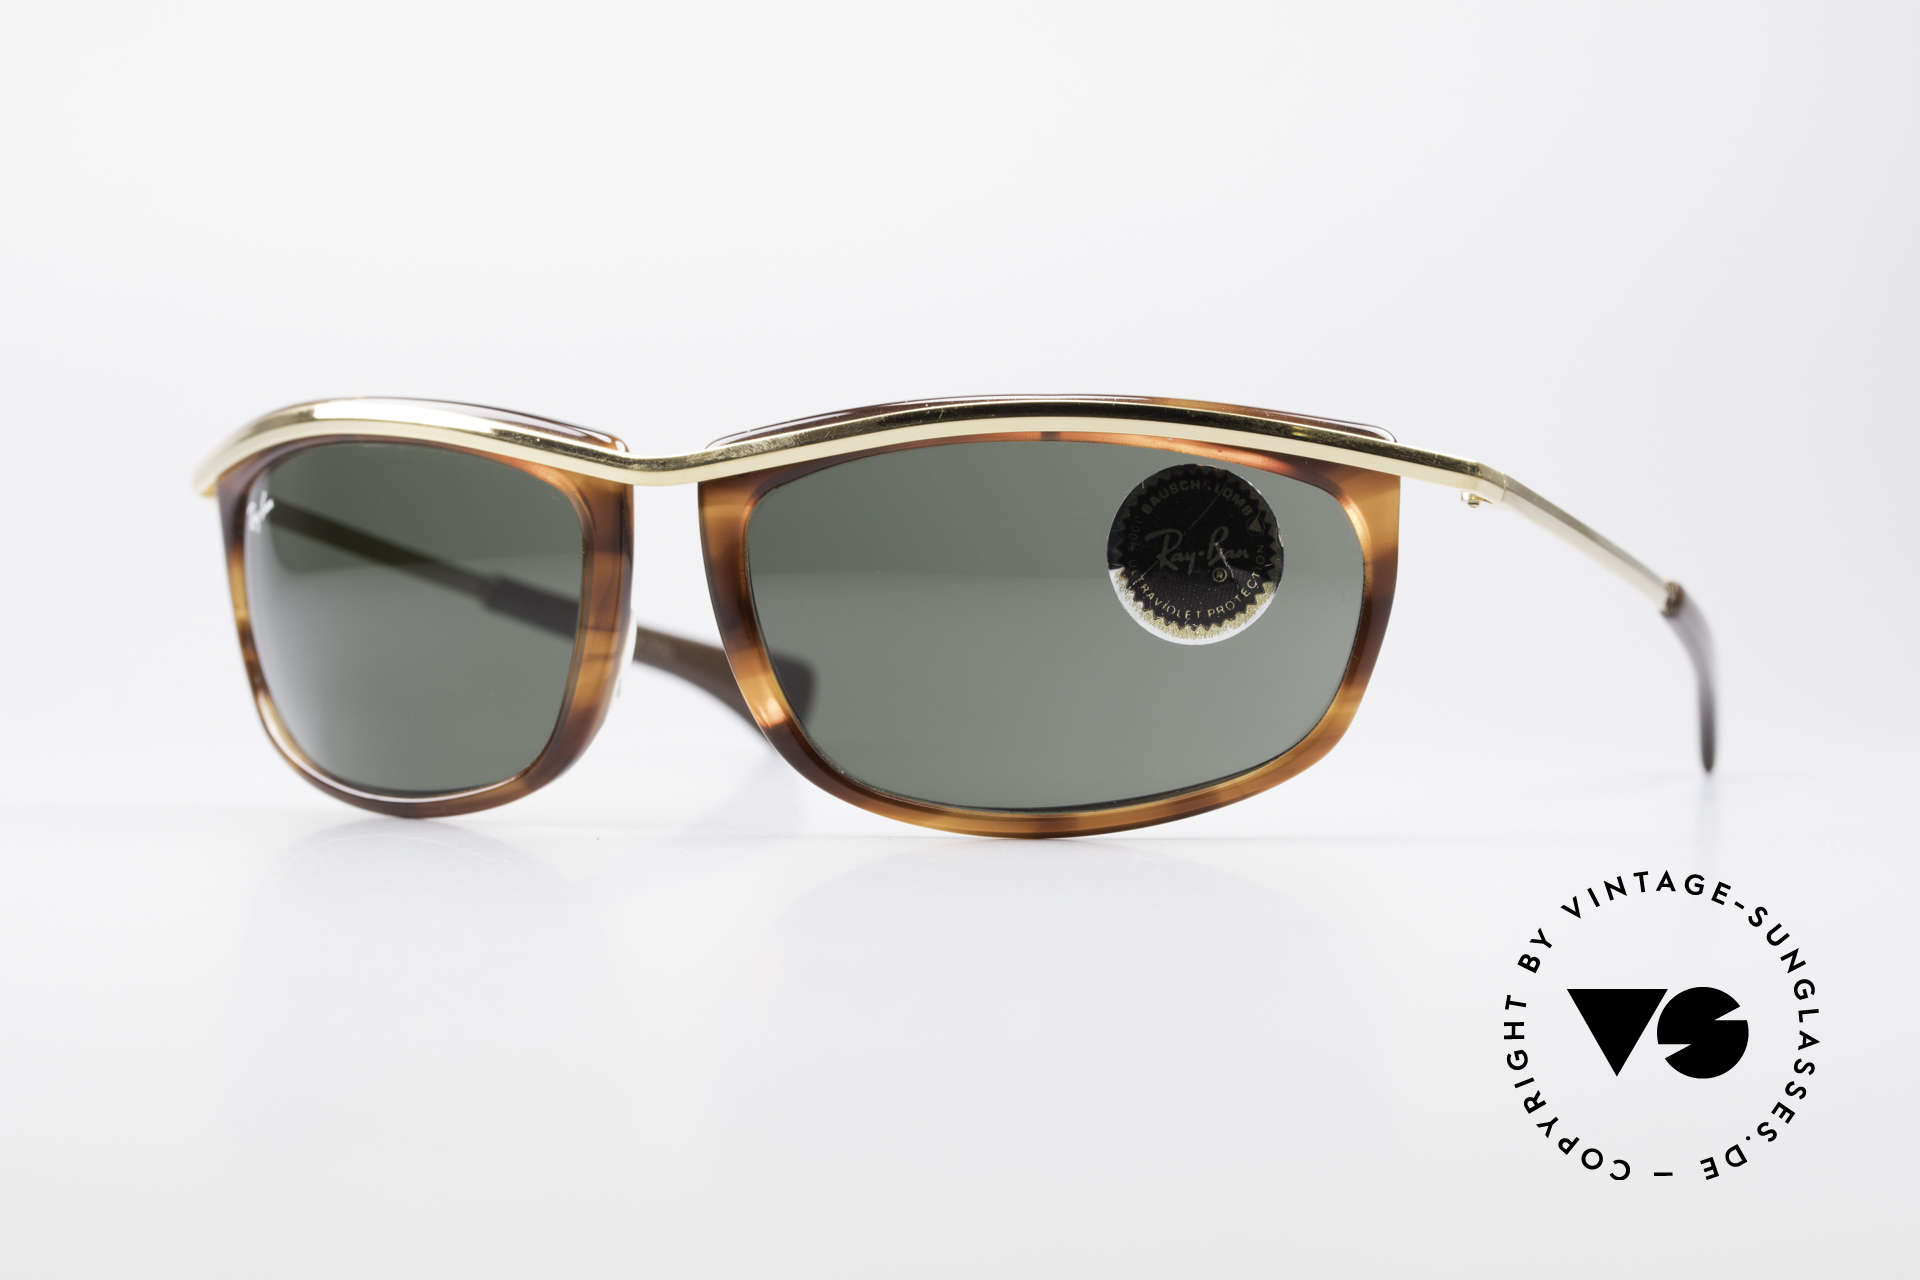 Ray Ban Olympian I Sporty USA B&L Sunglasses, sporty model from Ray Bans 'Olympian Collection', Made for Men